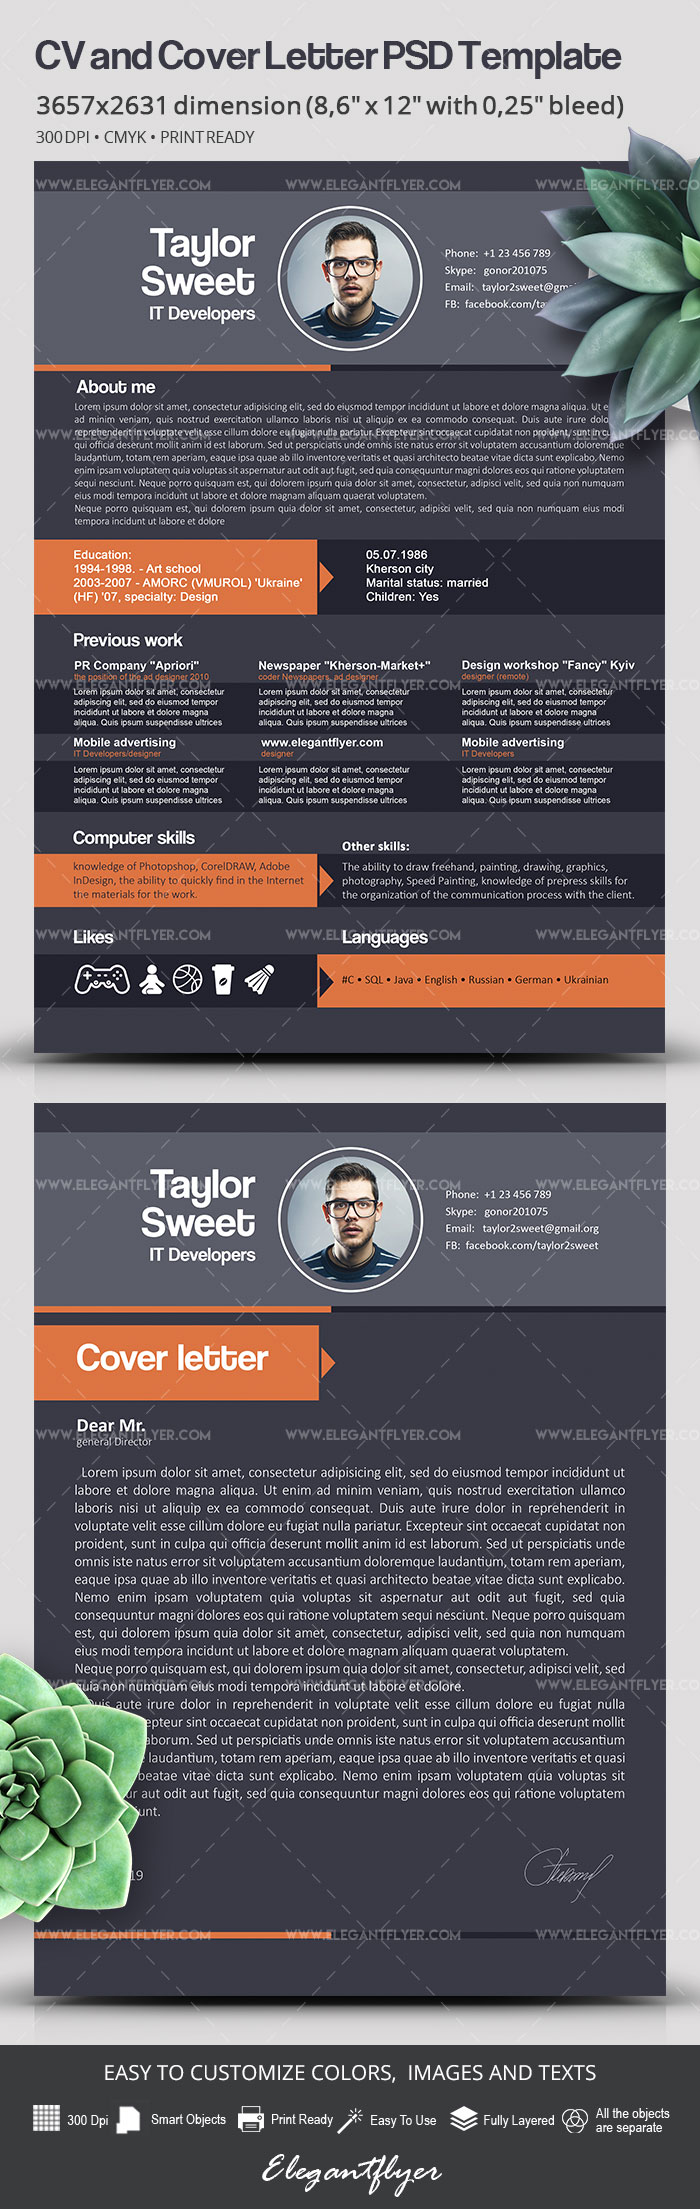 IT Developers – Free CV Template in PSD